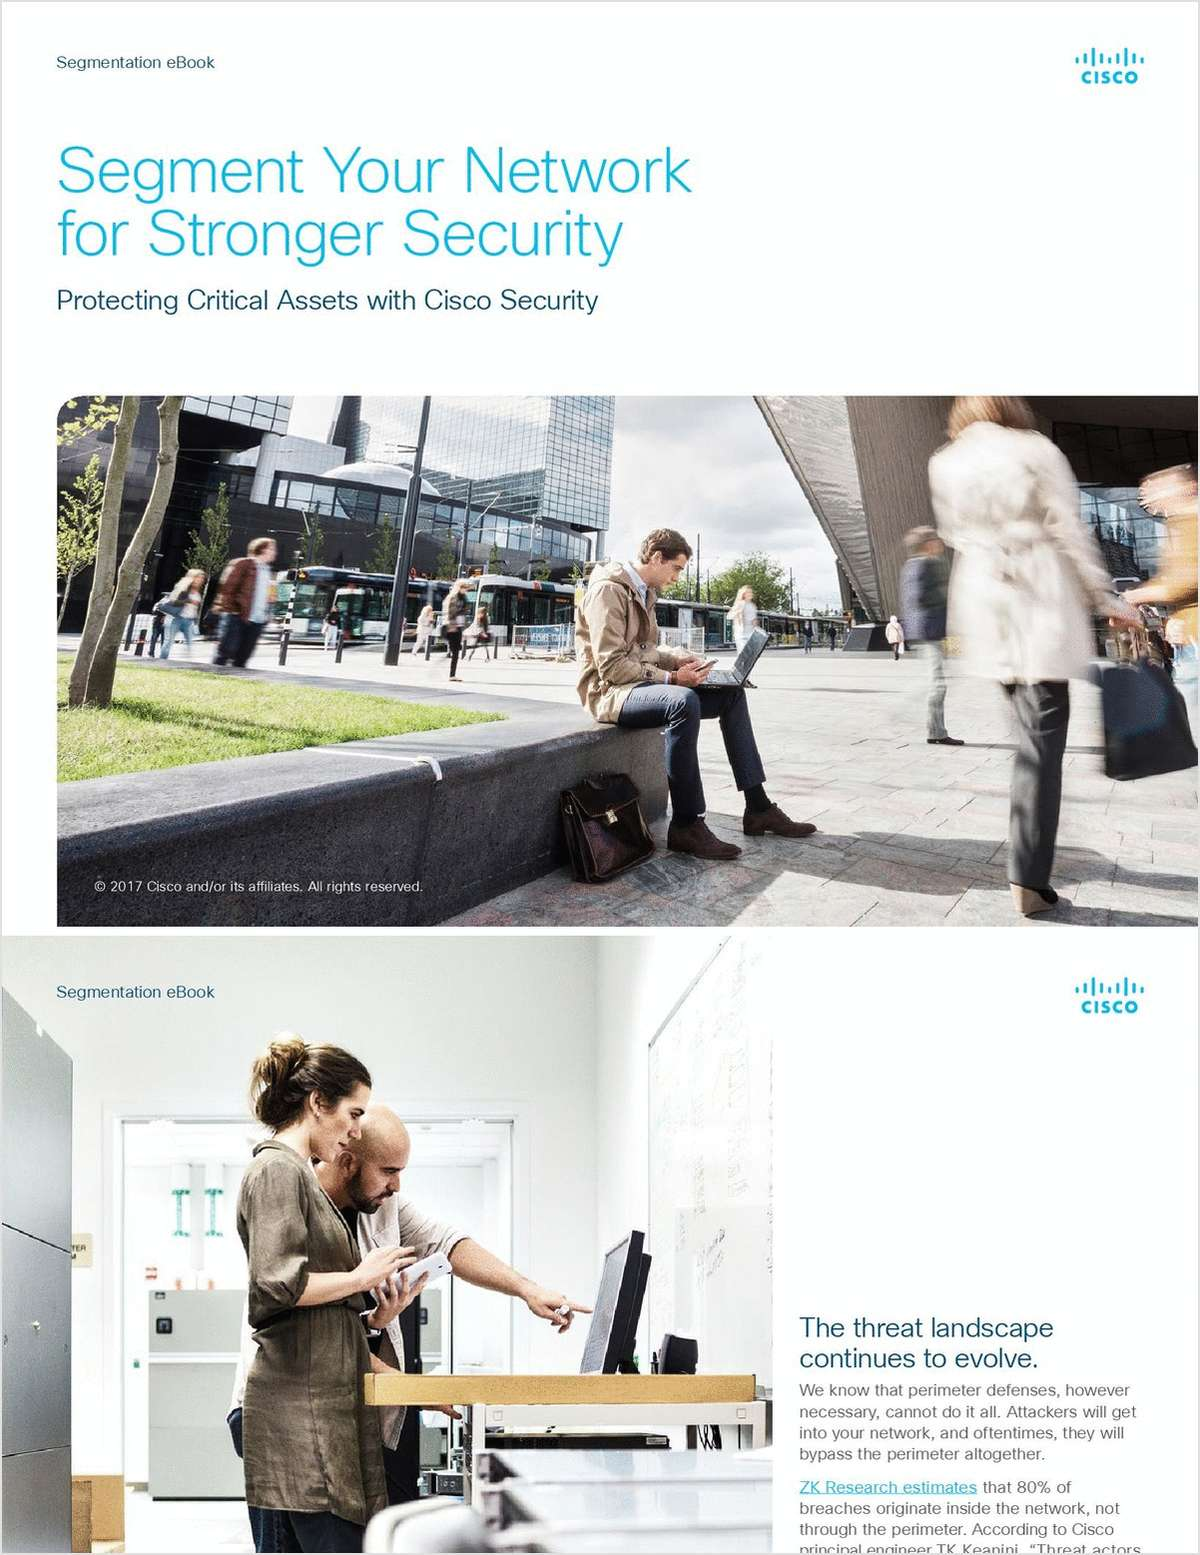 Segment Your Network for Stronger Security